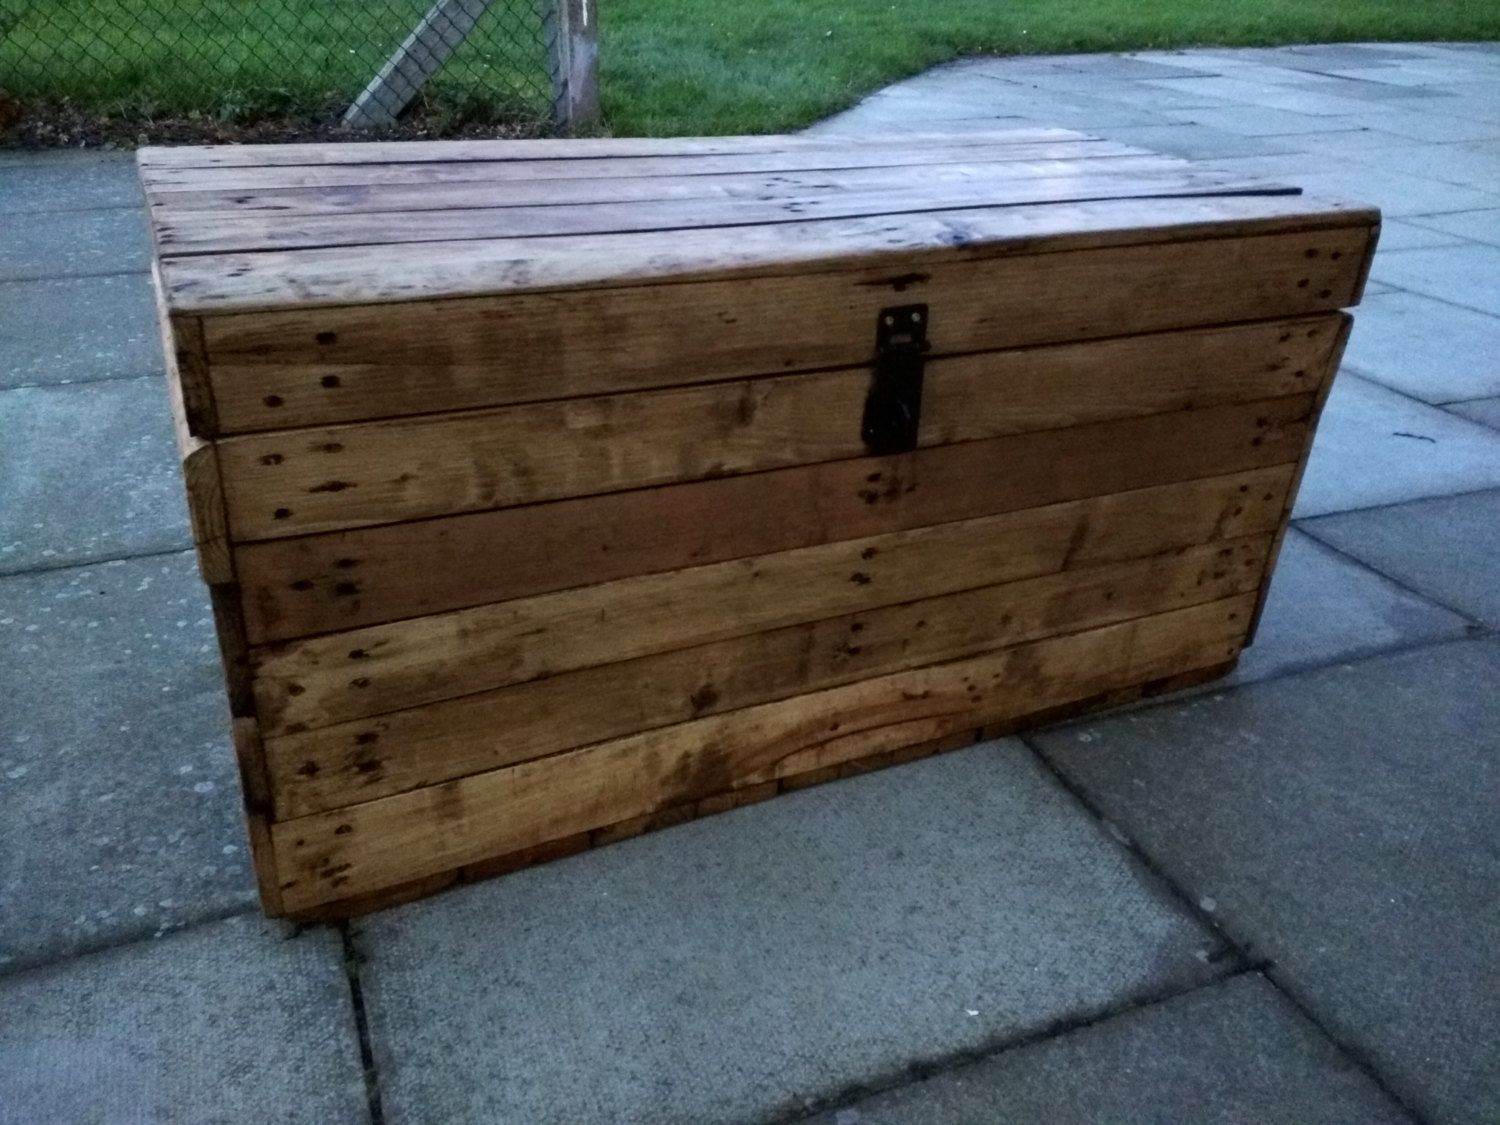 Great Rustic Storage Trunk Bench Hope Chest Handmade From Reclaimed Wood By  TimberWolfFurniture On Etsy #etsy